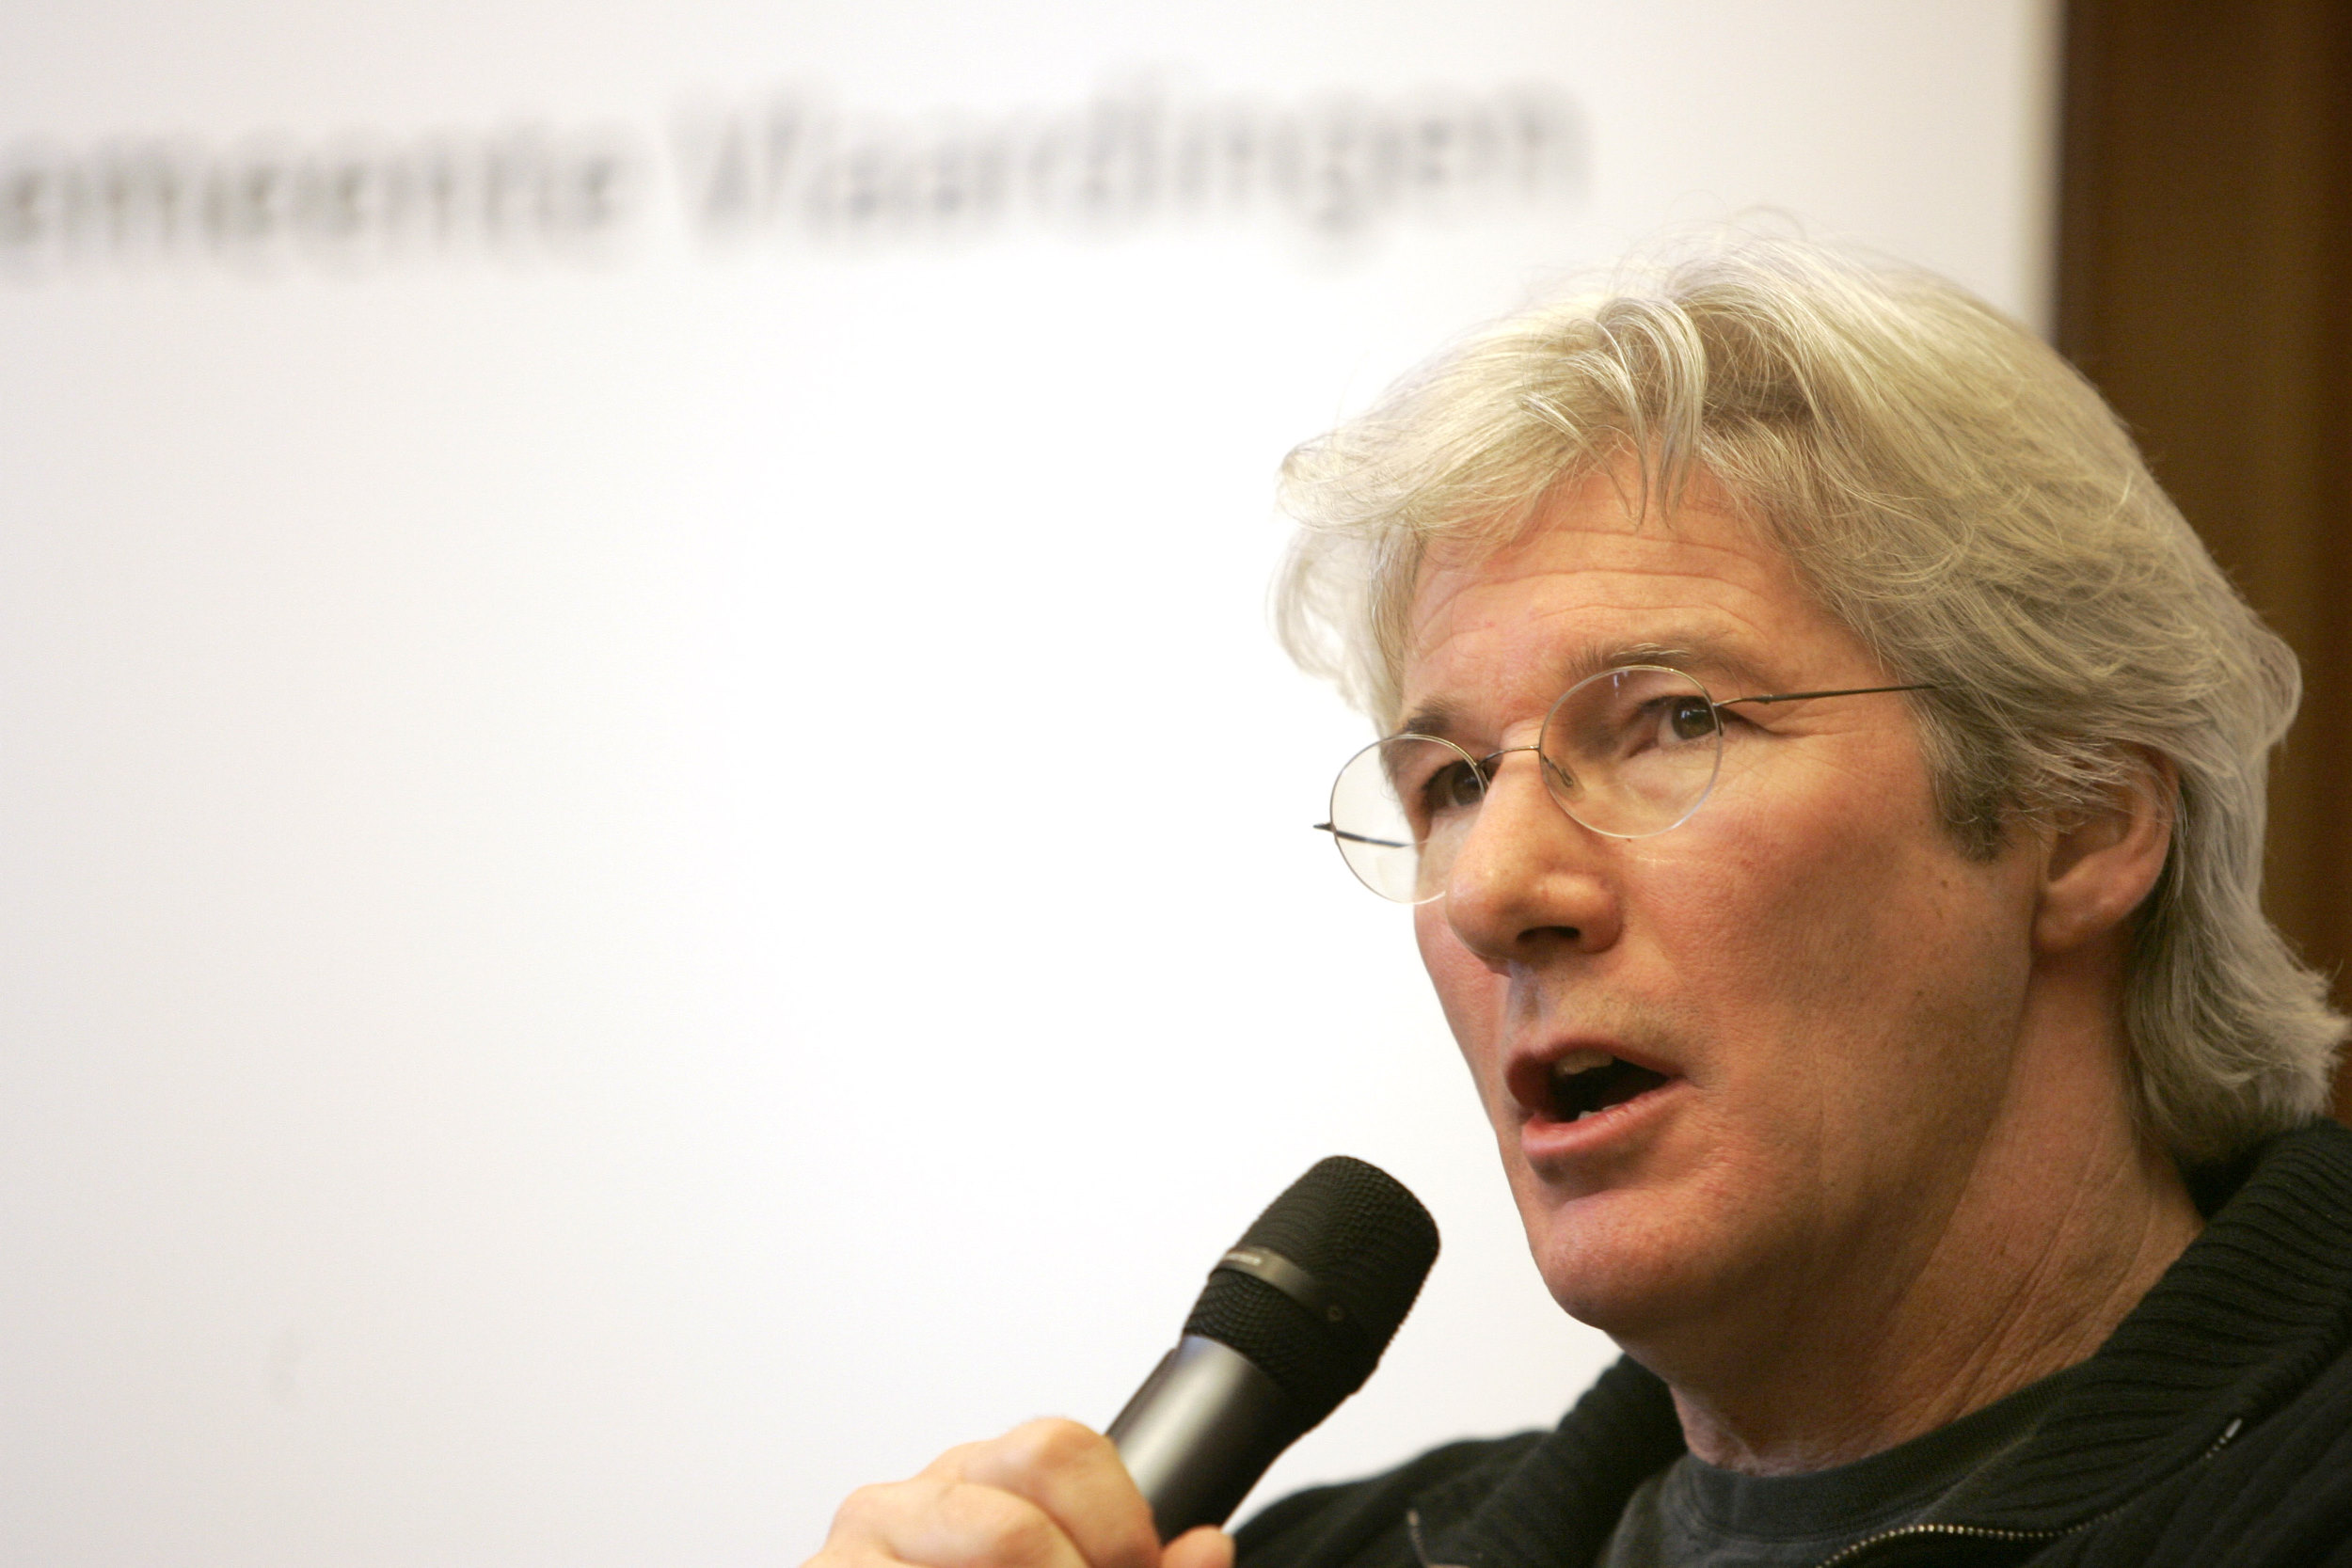 Richard Gere, persconferentie, press conference, Geuzenpenning, Vlaardingen, acteur, actor, Golden Globe